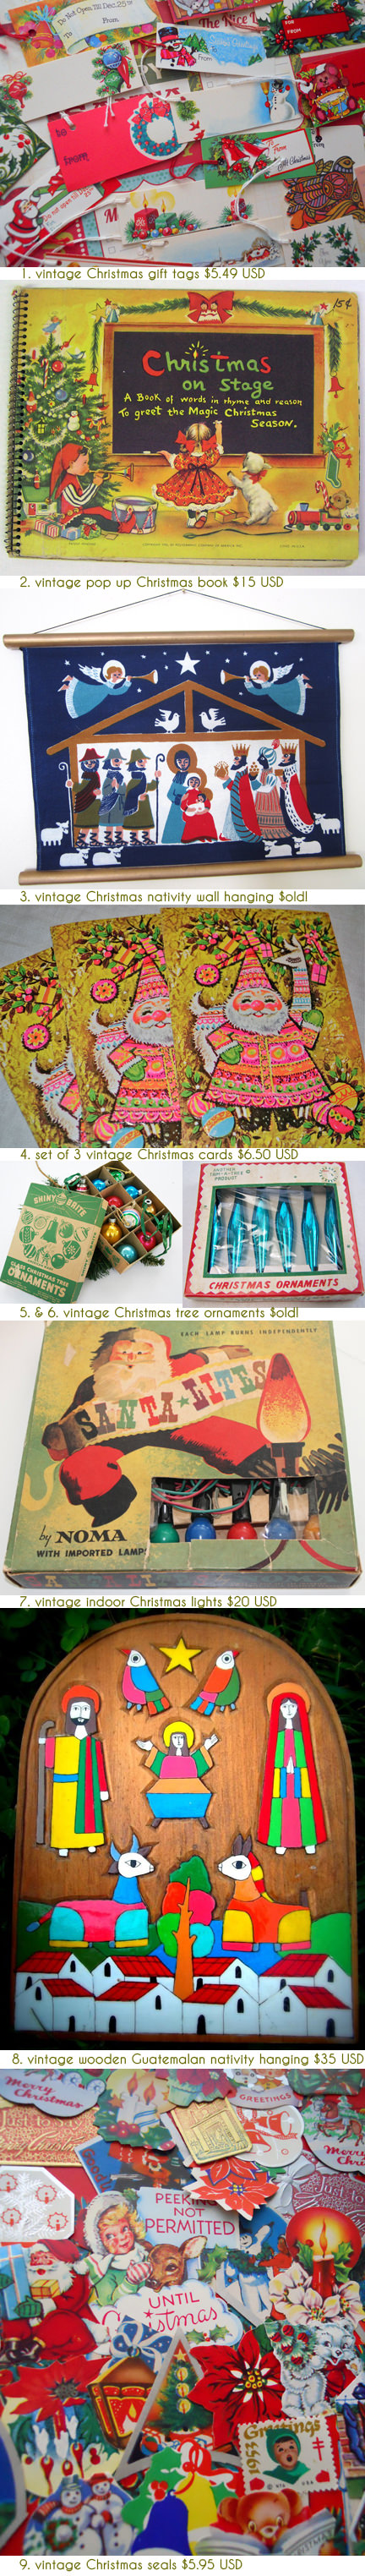 selection of festive Christmas items available on Etsy